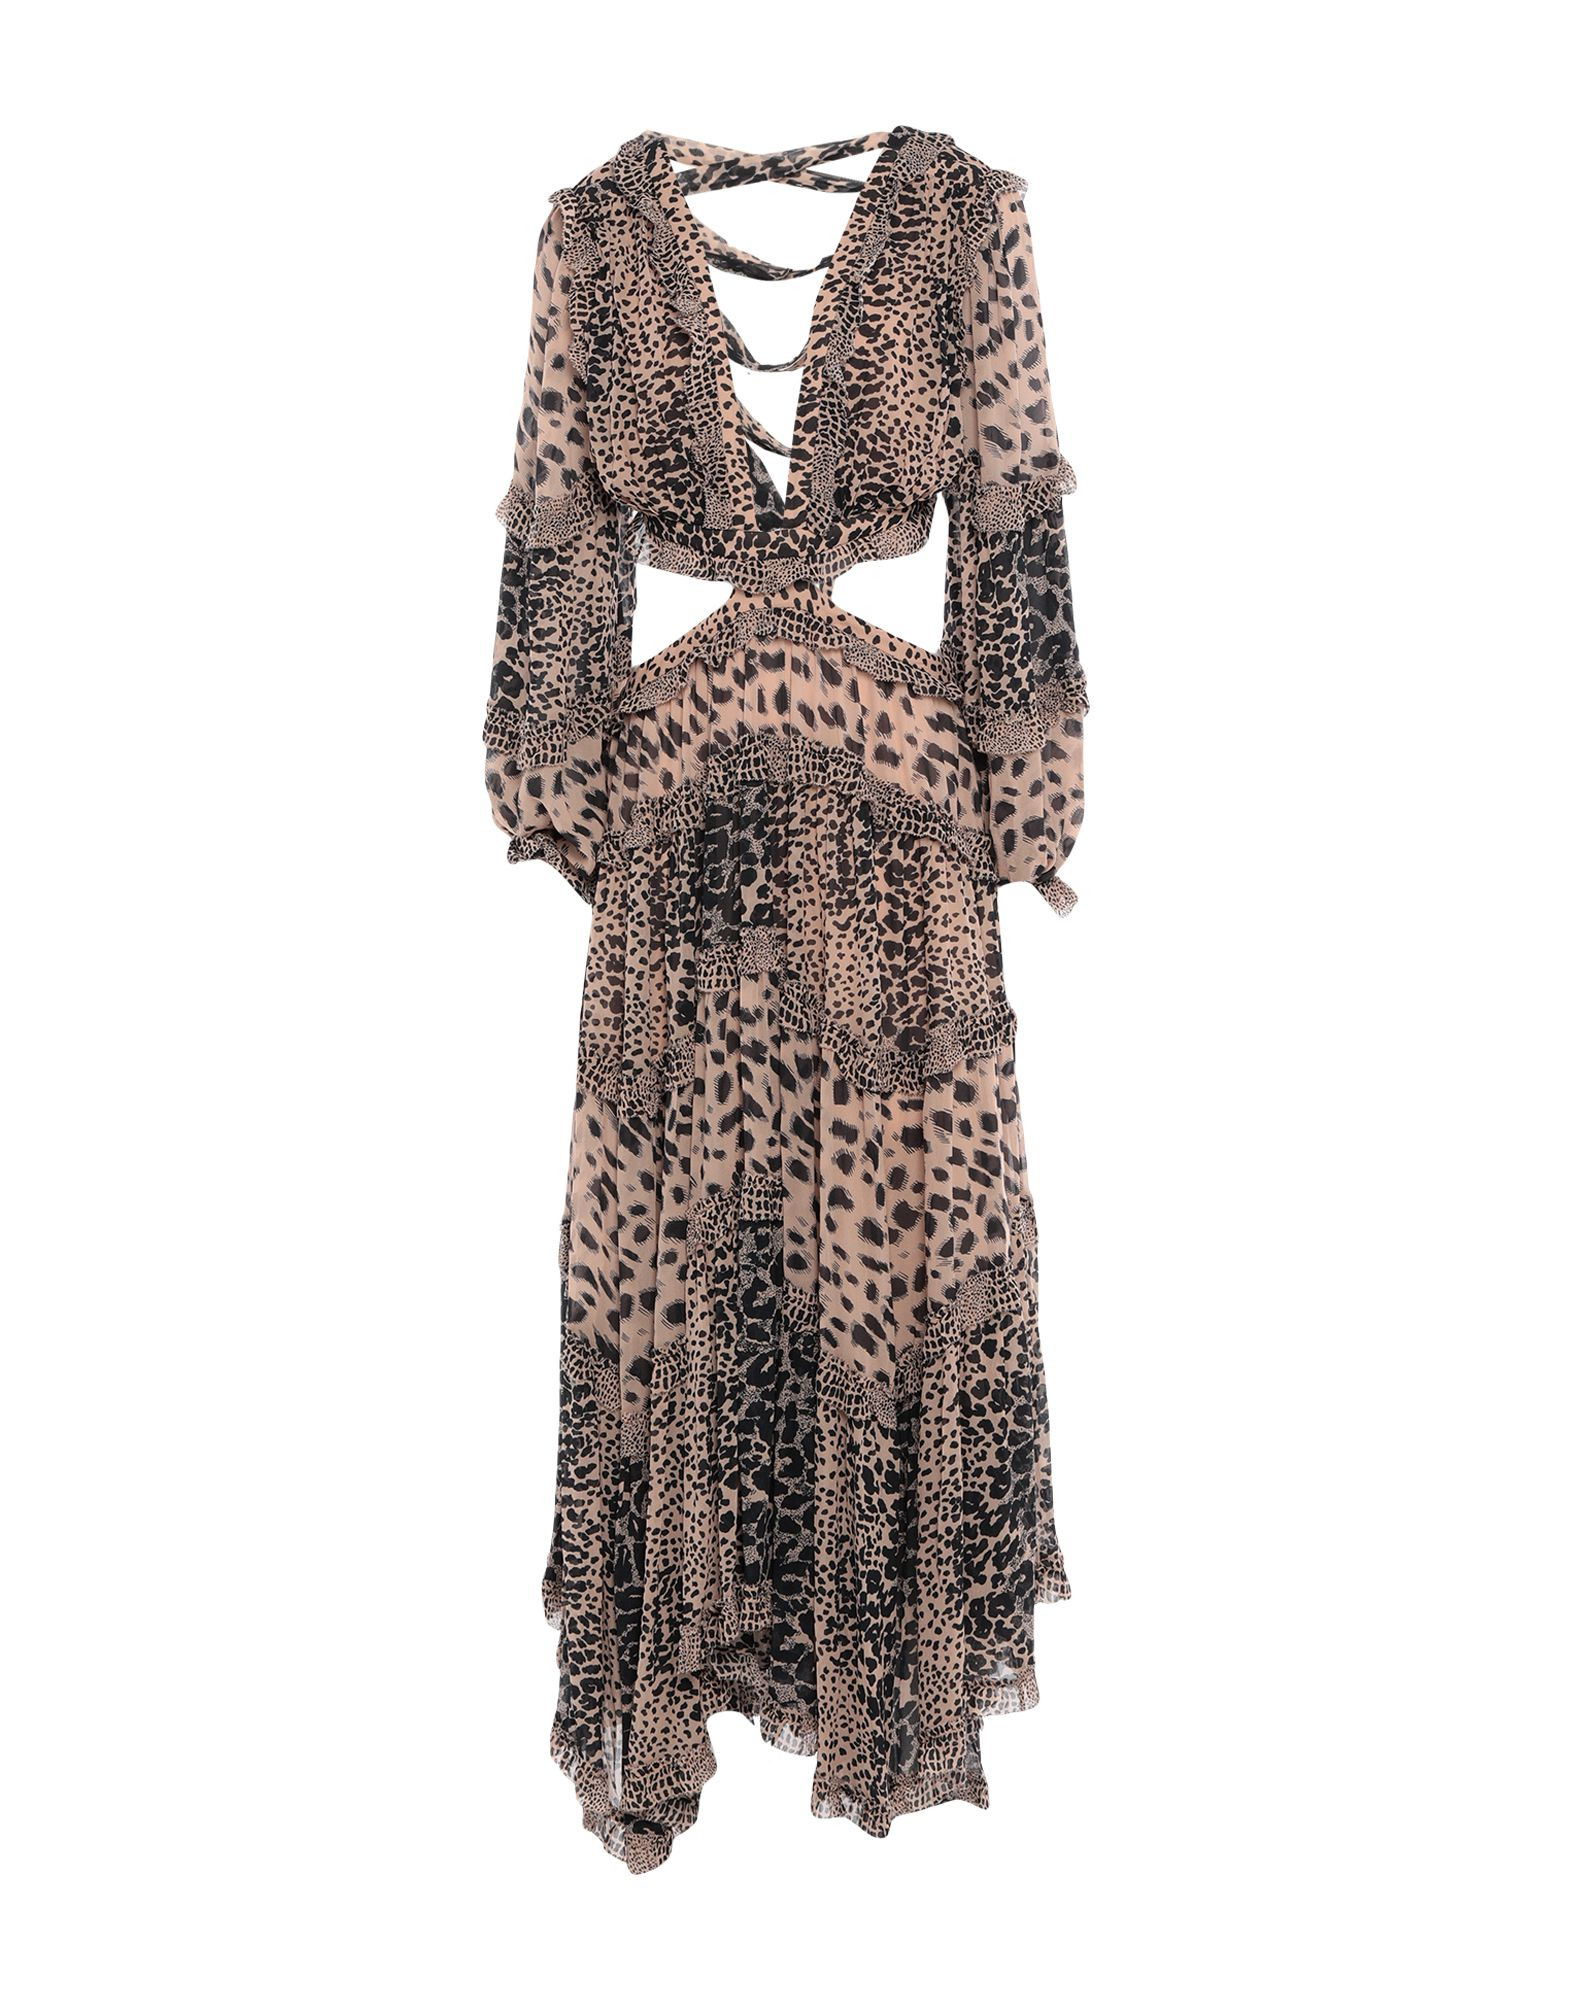 ZIMMERMANN Long dresses. crepe, ruffles, tassels, leopard-print, deep neckline, no pockets, long sleeves, side closure, zipper closure, fully lined. 100% Viscose